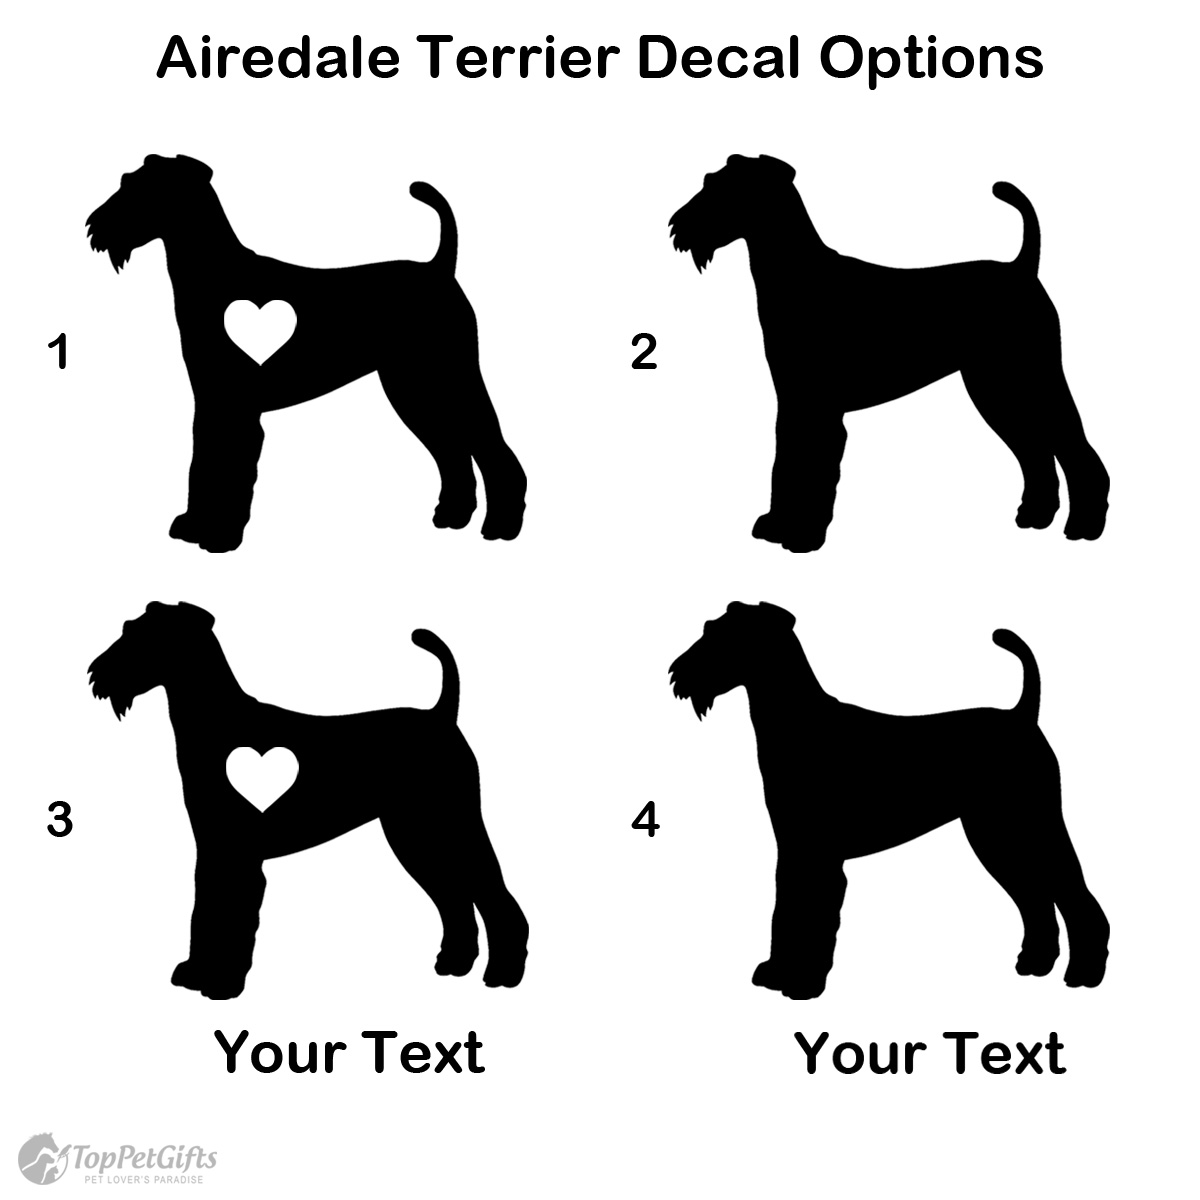 Personalized Airedale Terrier Decal Options